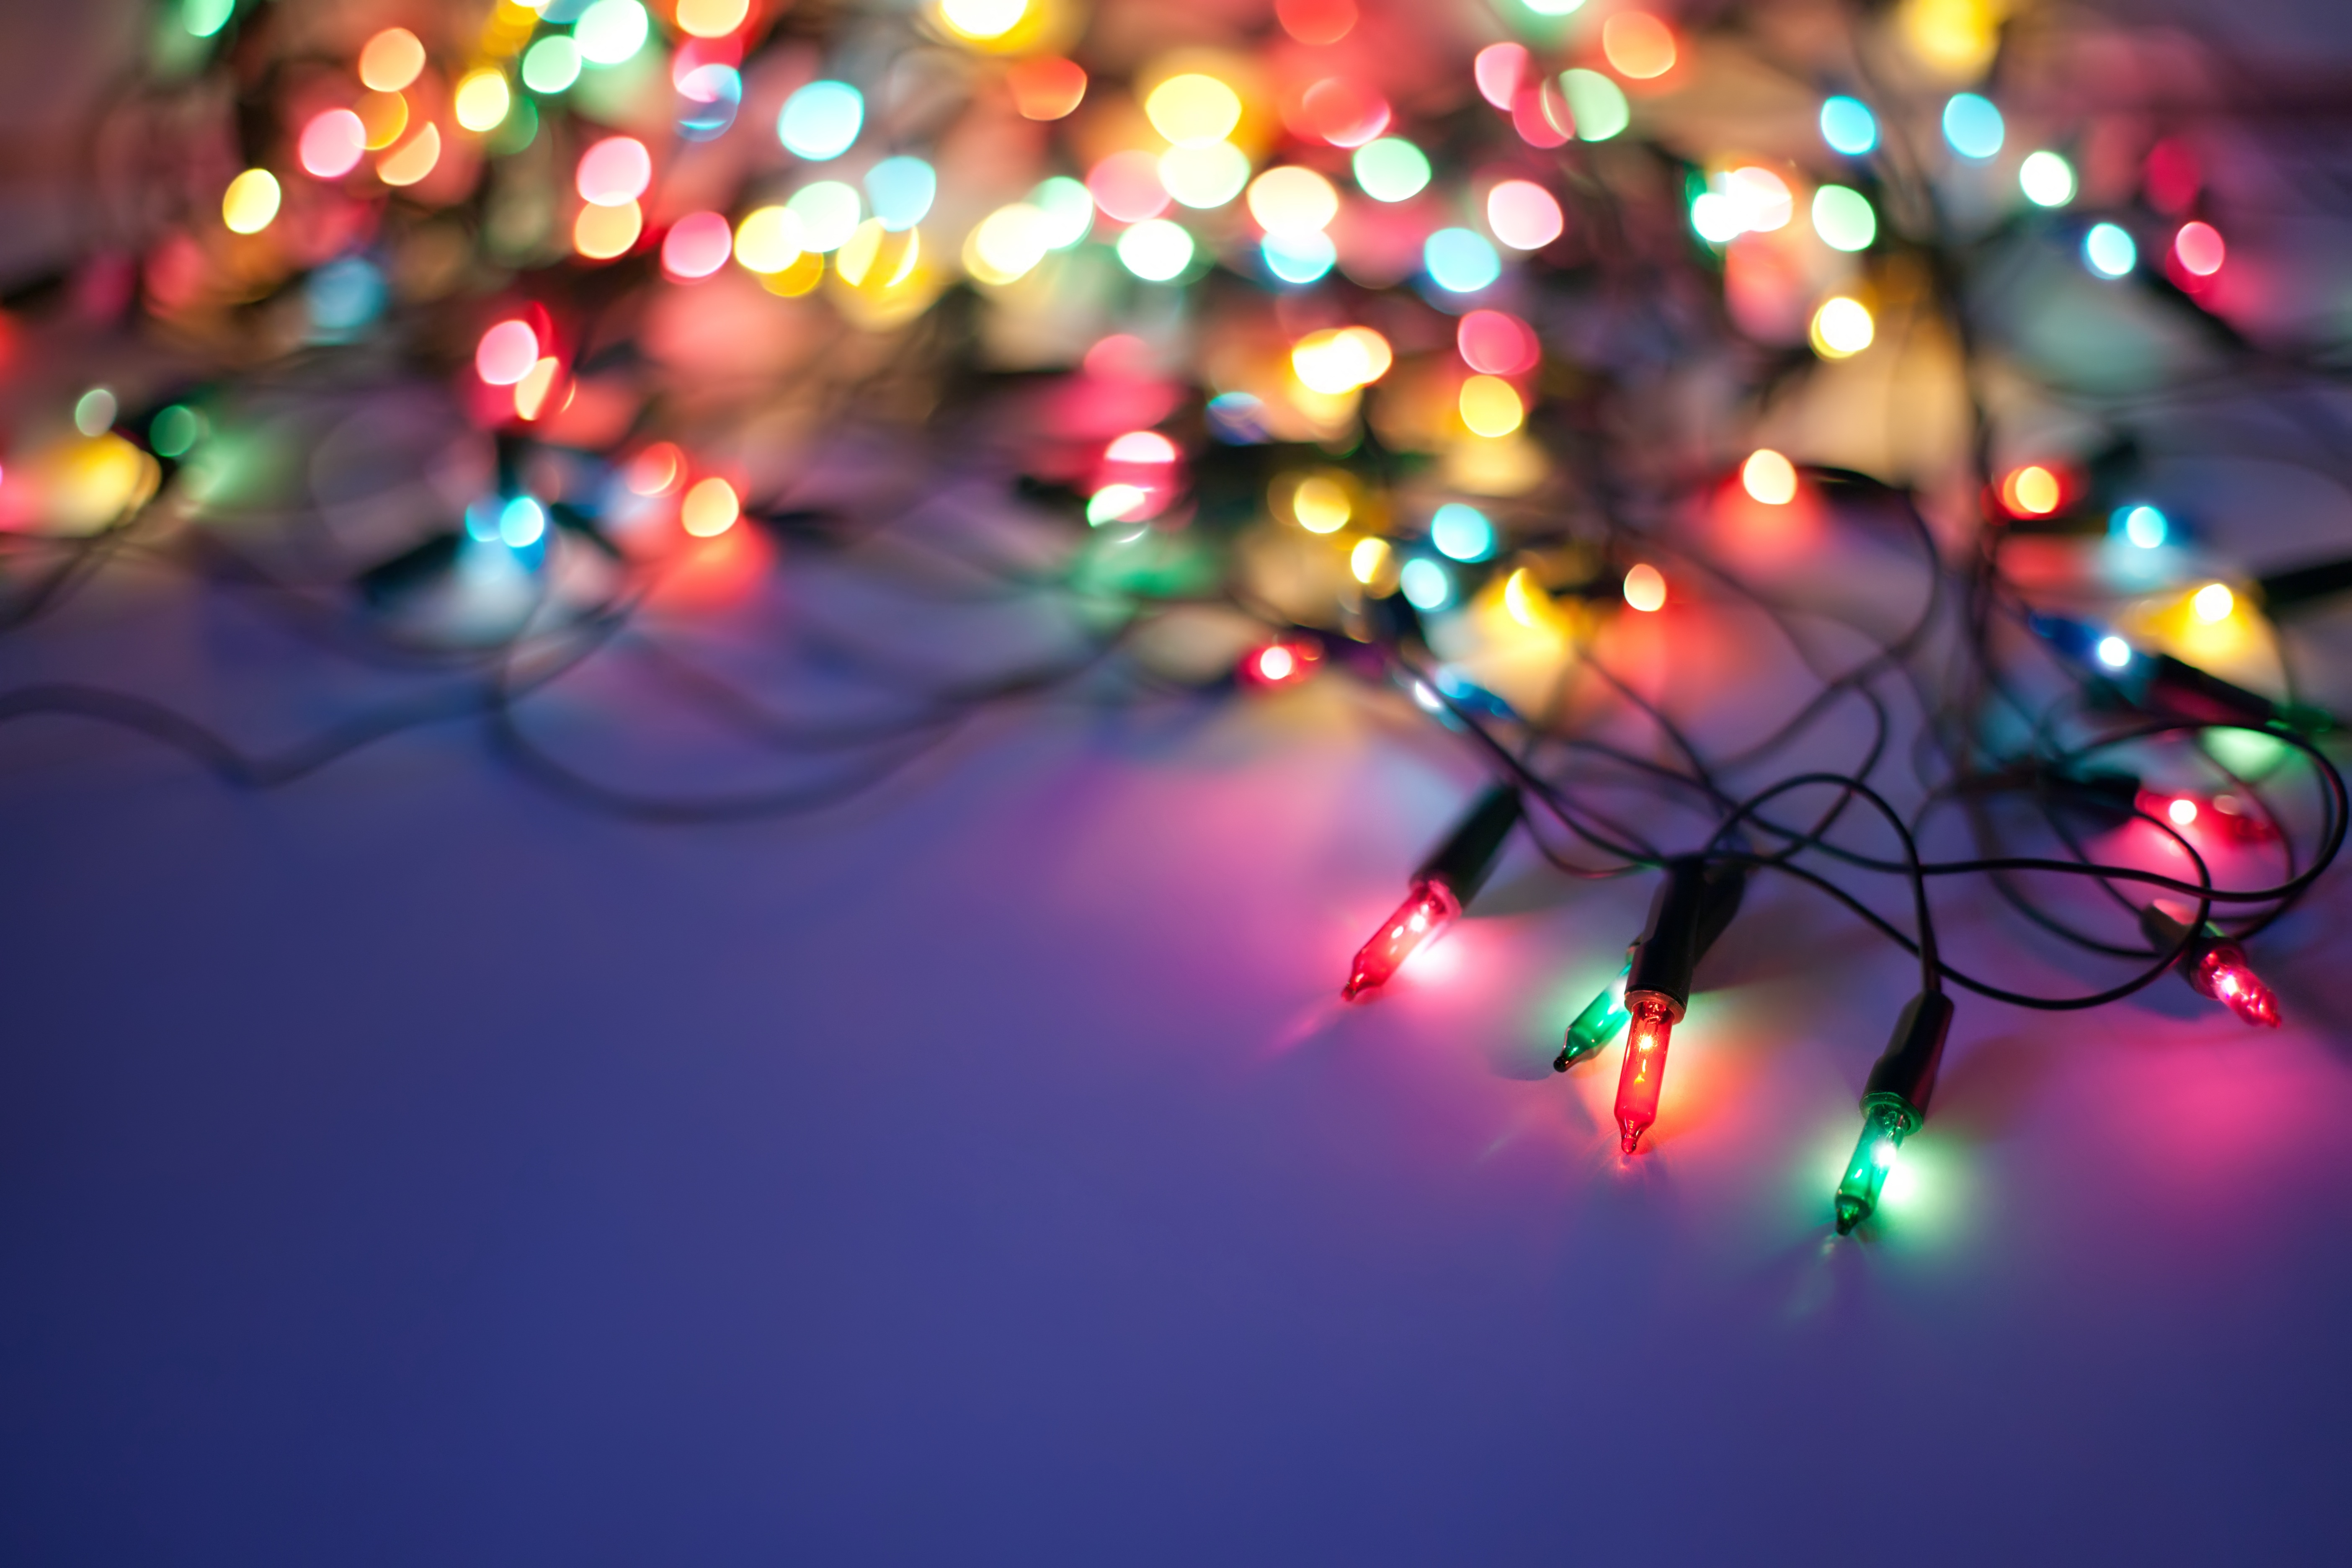 Today in Lawrence: Temps drop; choir concert; holiday lights by ...